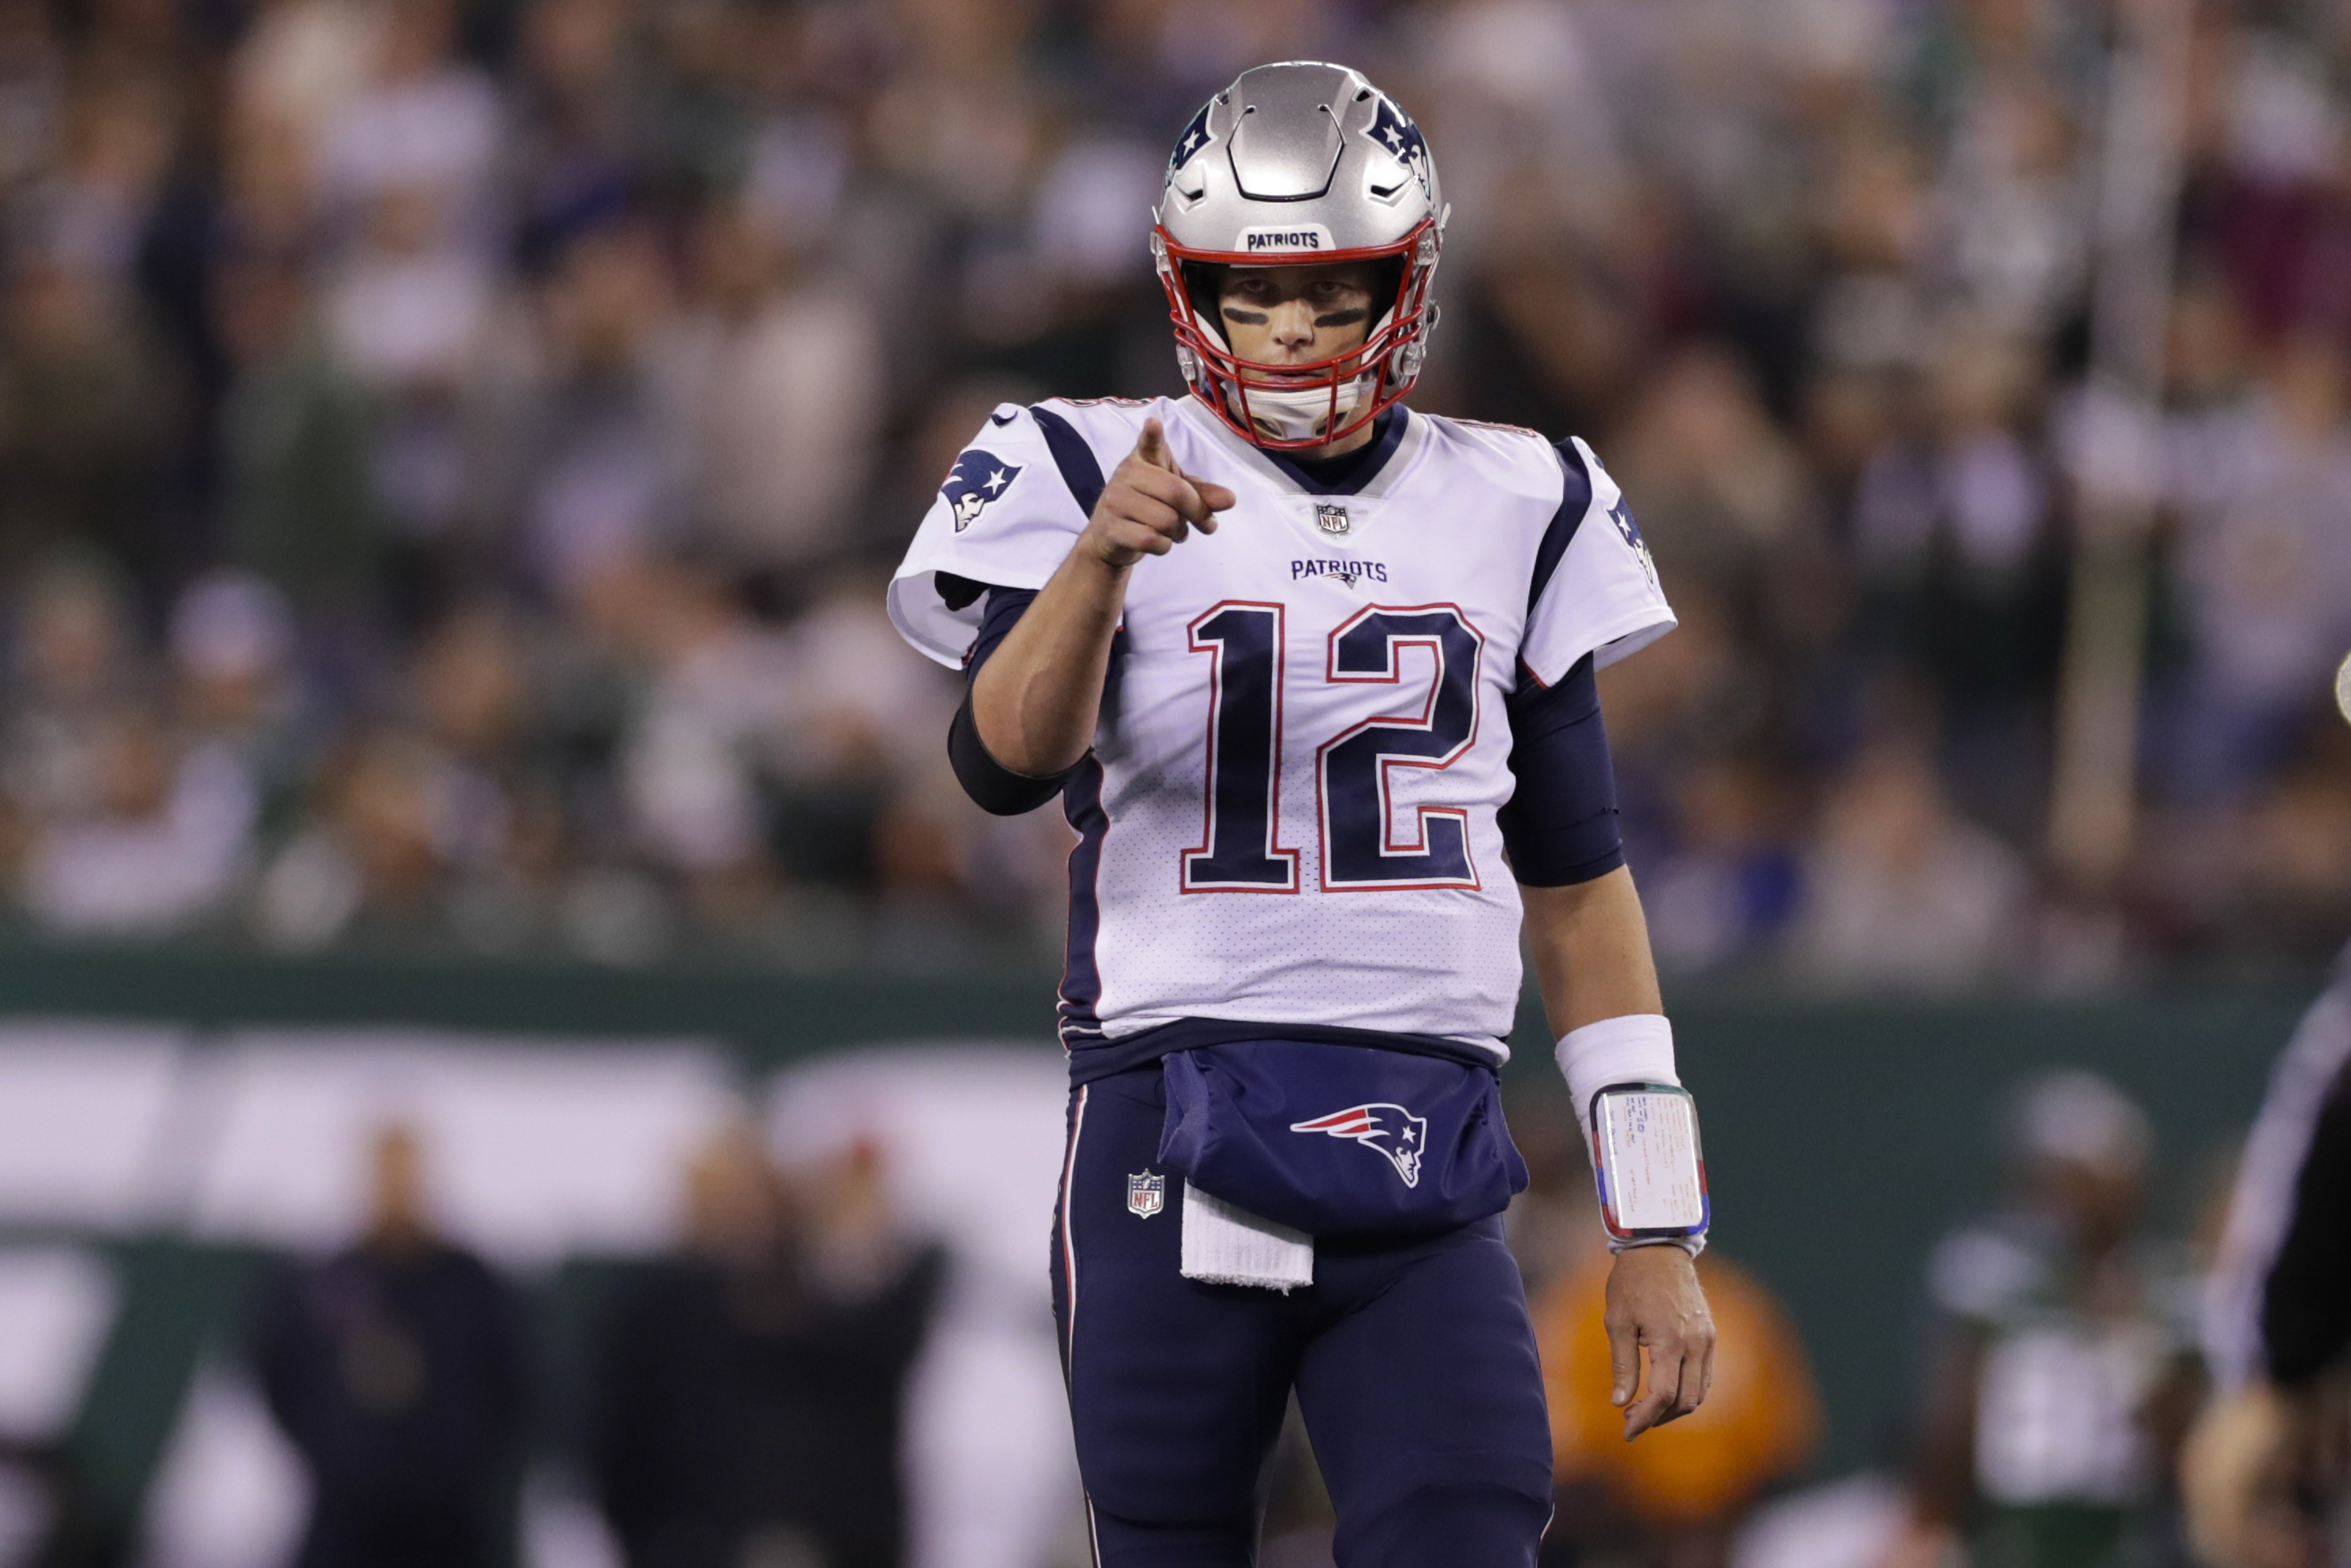 NFL rumors: Patriots' Tom Brady fuels rumors he will leave New England after this season